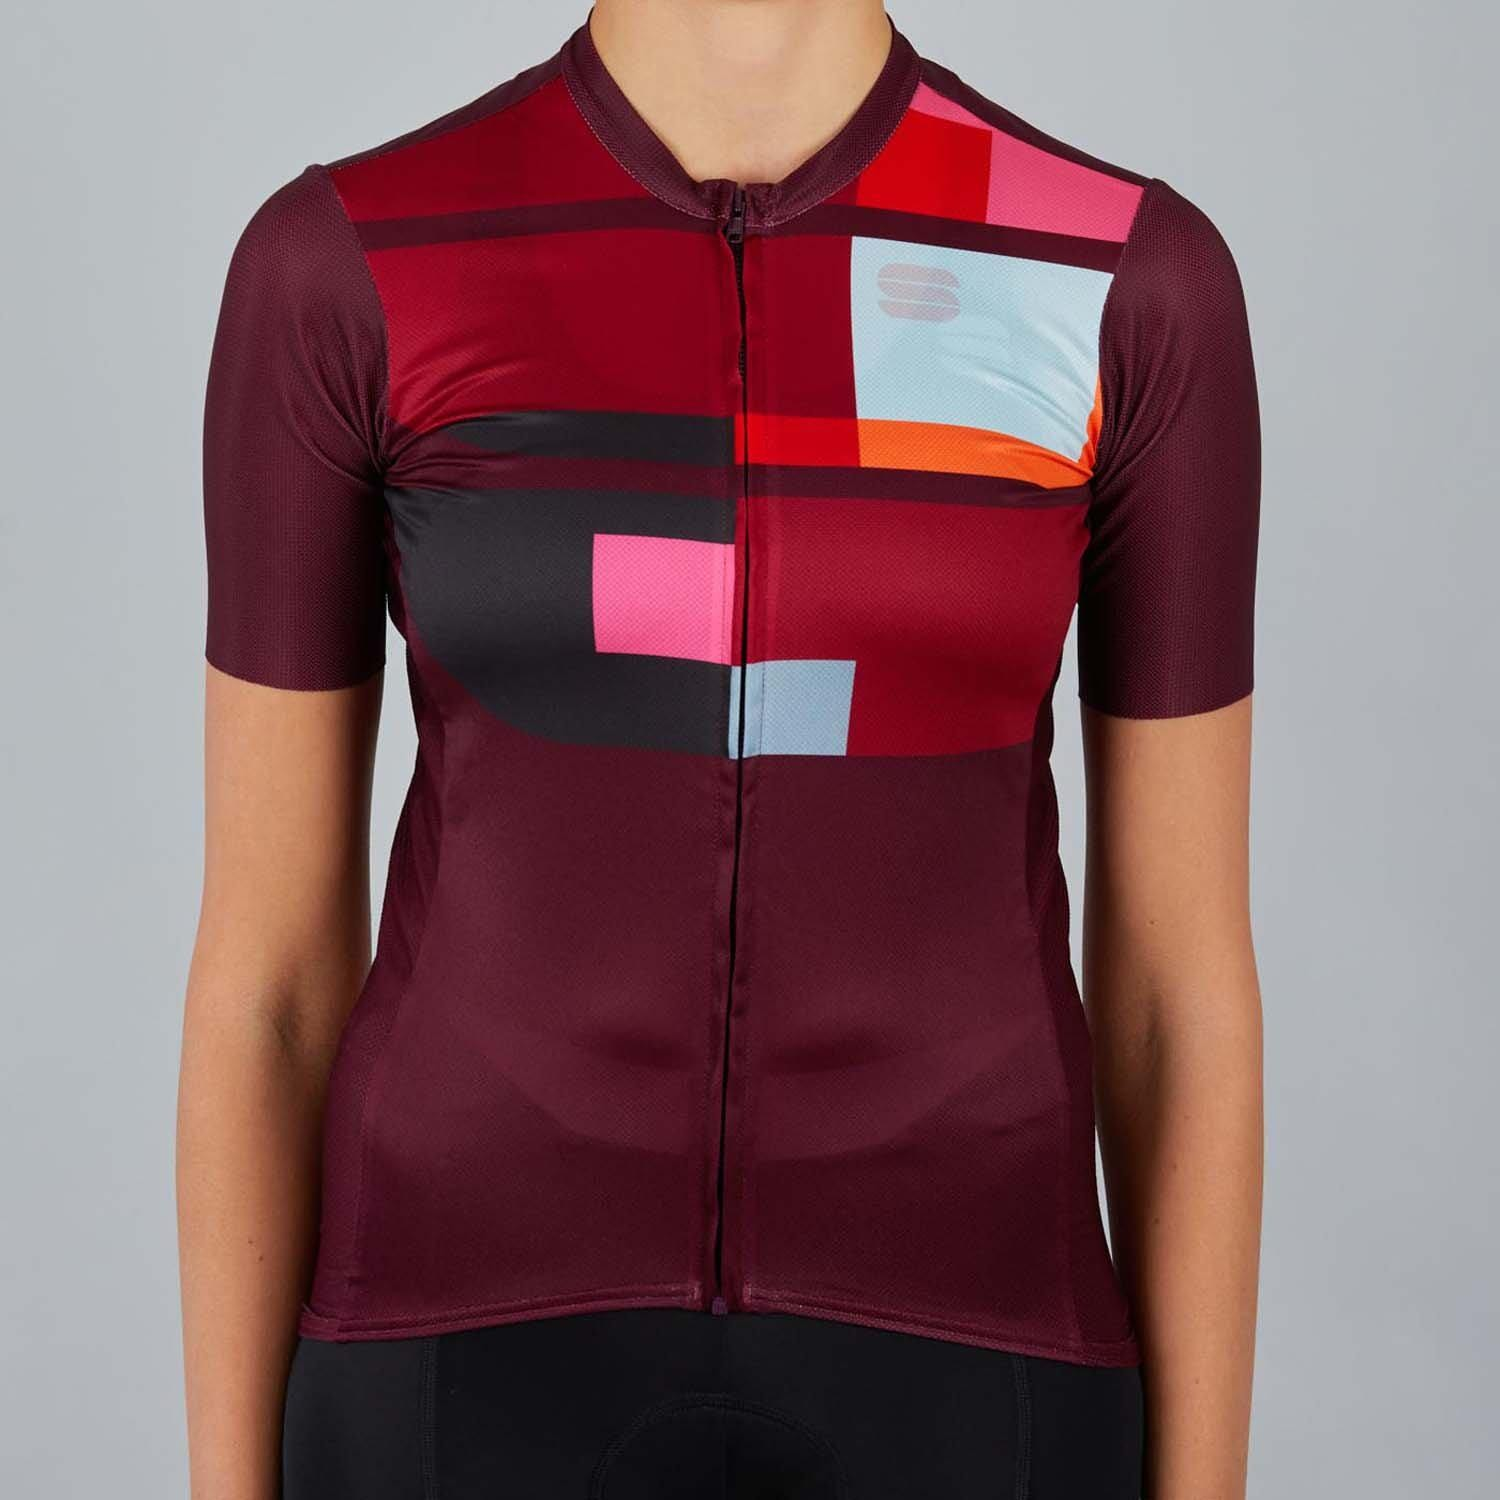 Sportful-Sportful Idea Women's Jersey-Red Wine-XS-SF210826051-saddleback-elite-performance-cycling